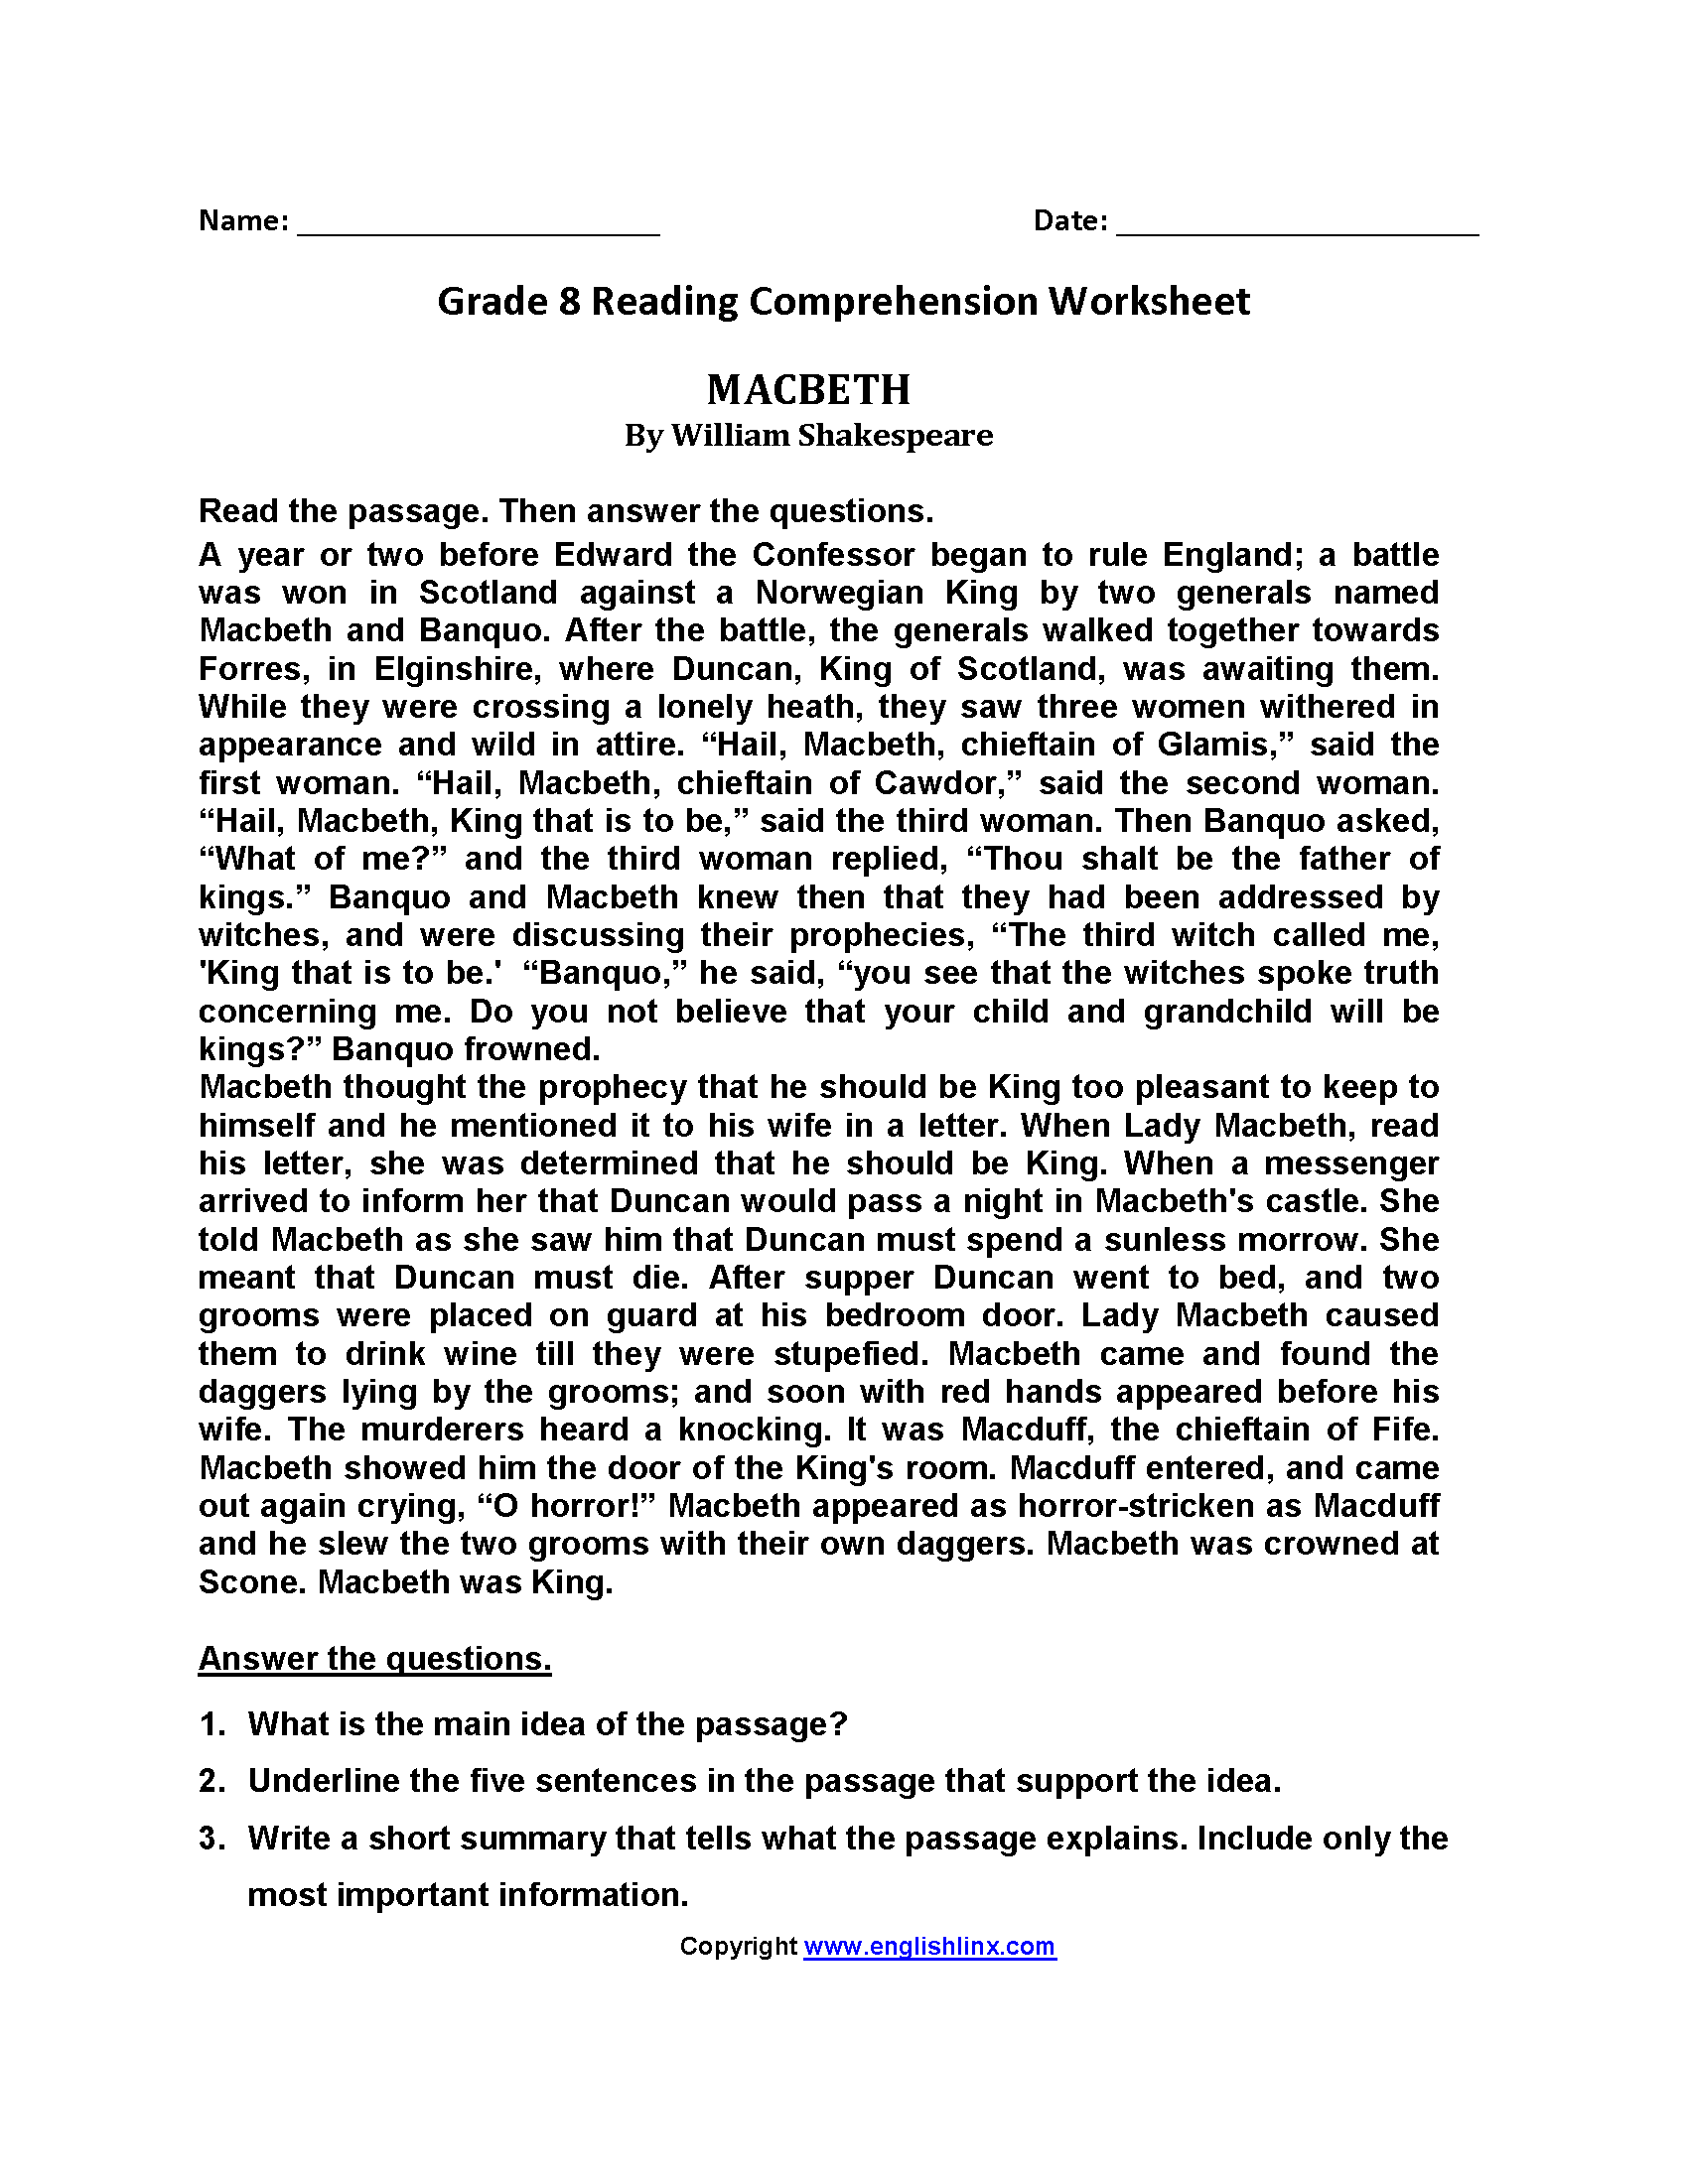 Macbeth Eighth Grade Reading Worksheets | Reading worksheets ...